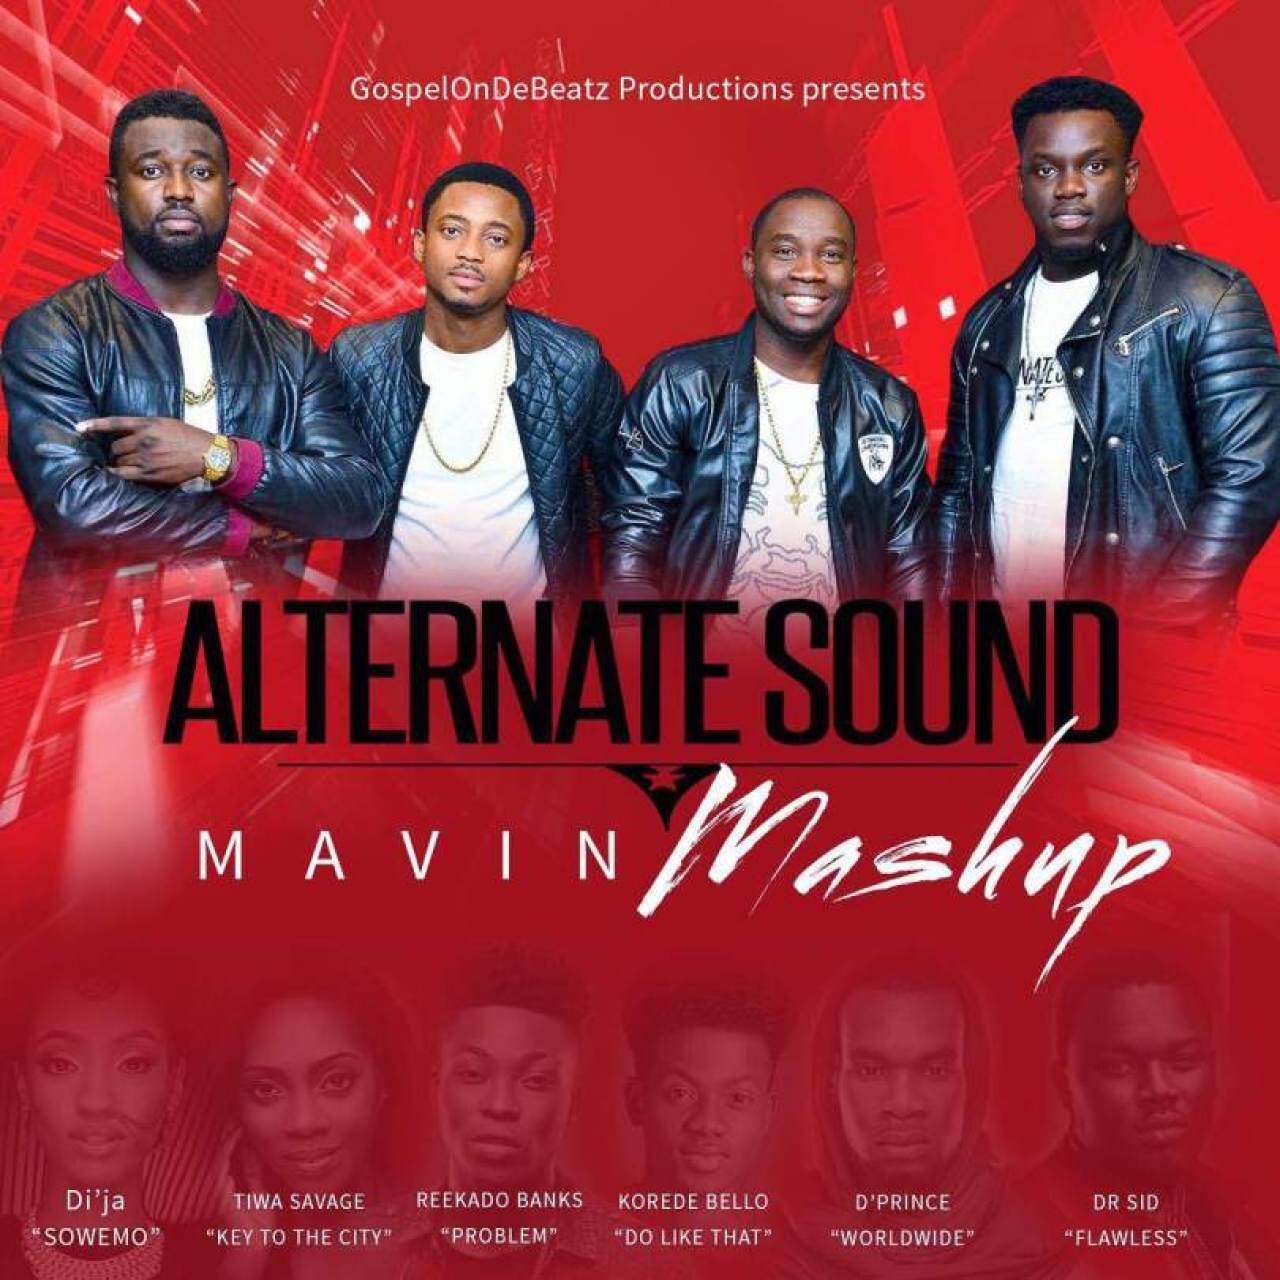 GospelOnDeBeatz & Alternate Sound - Mavin Mashup